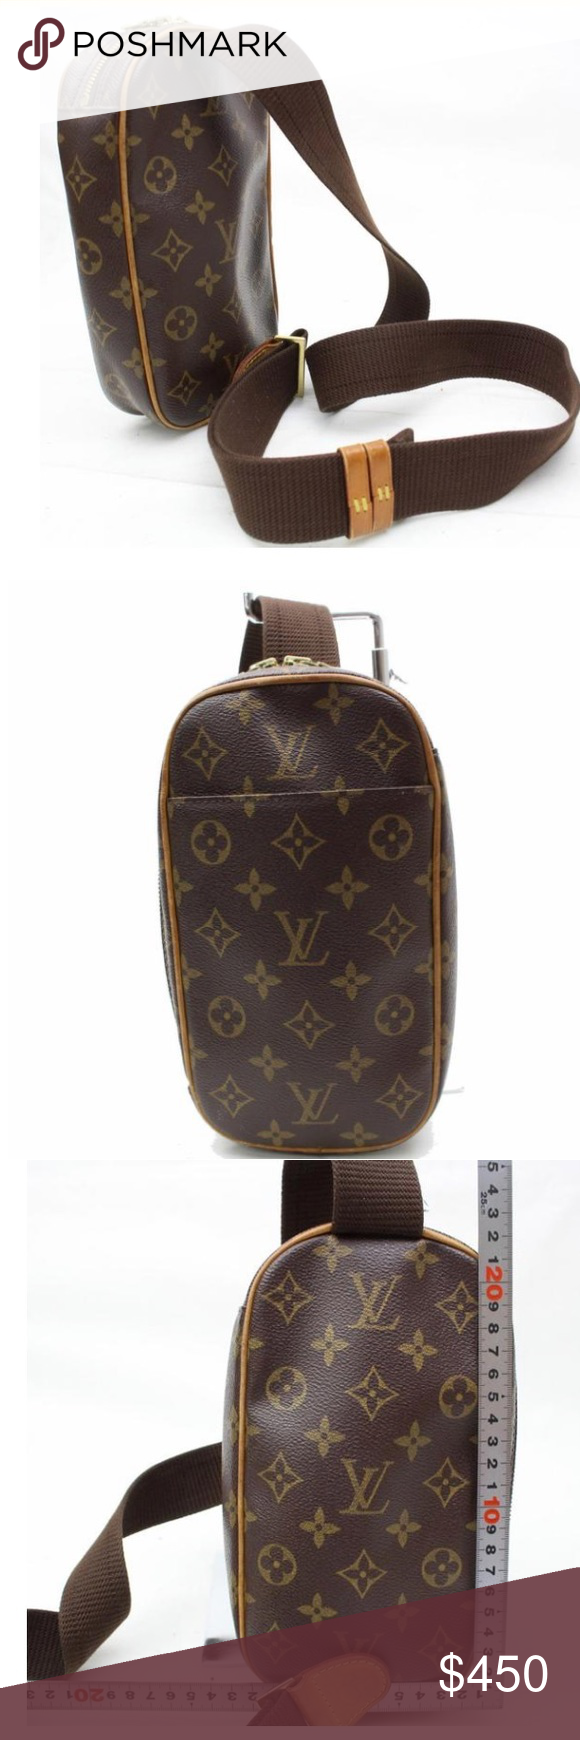 029a9e00a04e LV chest bag Louis Vuitton chest bag. Purchased in Tradesy. Authentic!!  Beautiful on trend bag of the moment. Looking to purchase an off-white so  have to ...